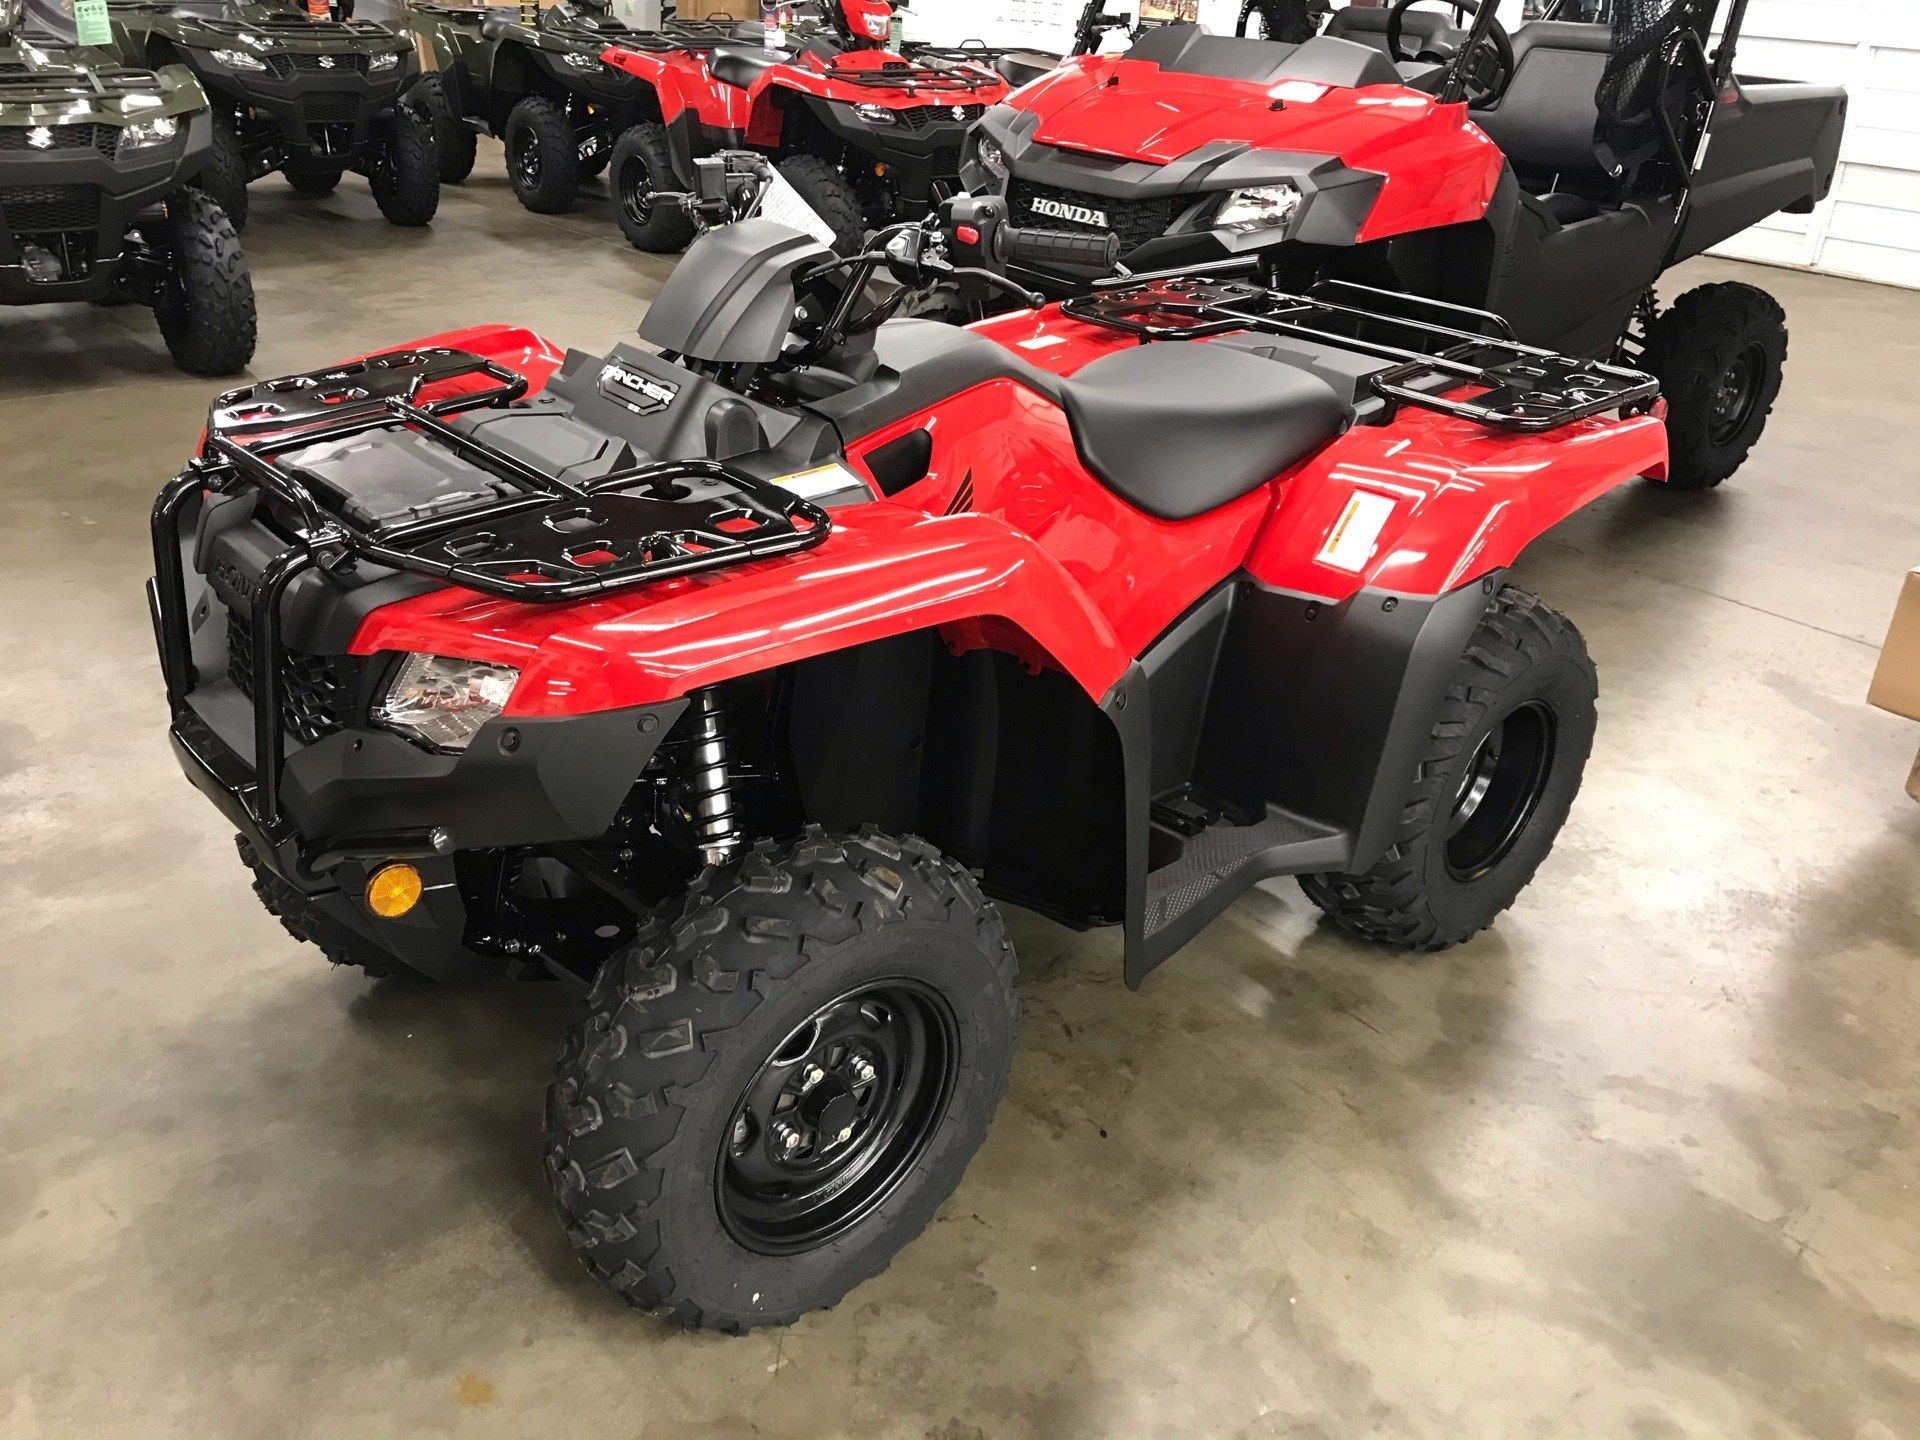 2020 Honda FourTrax Rancher ES in Sanford, North Carolina - Photo 1